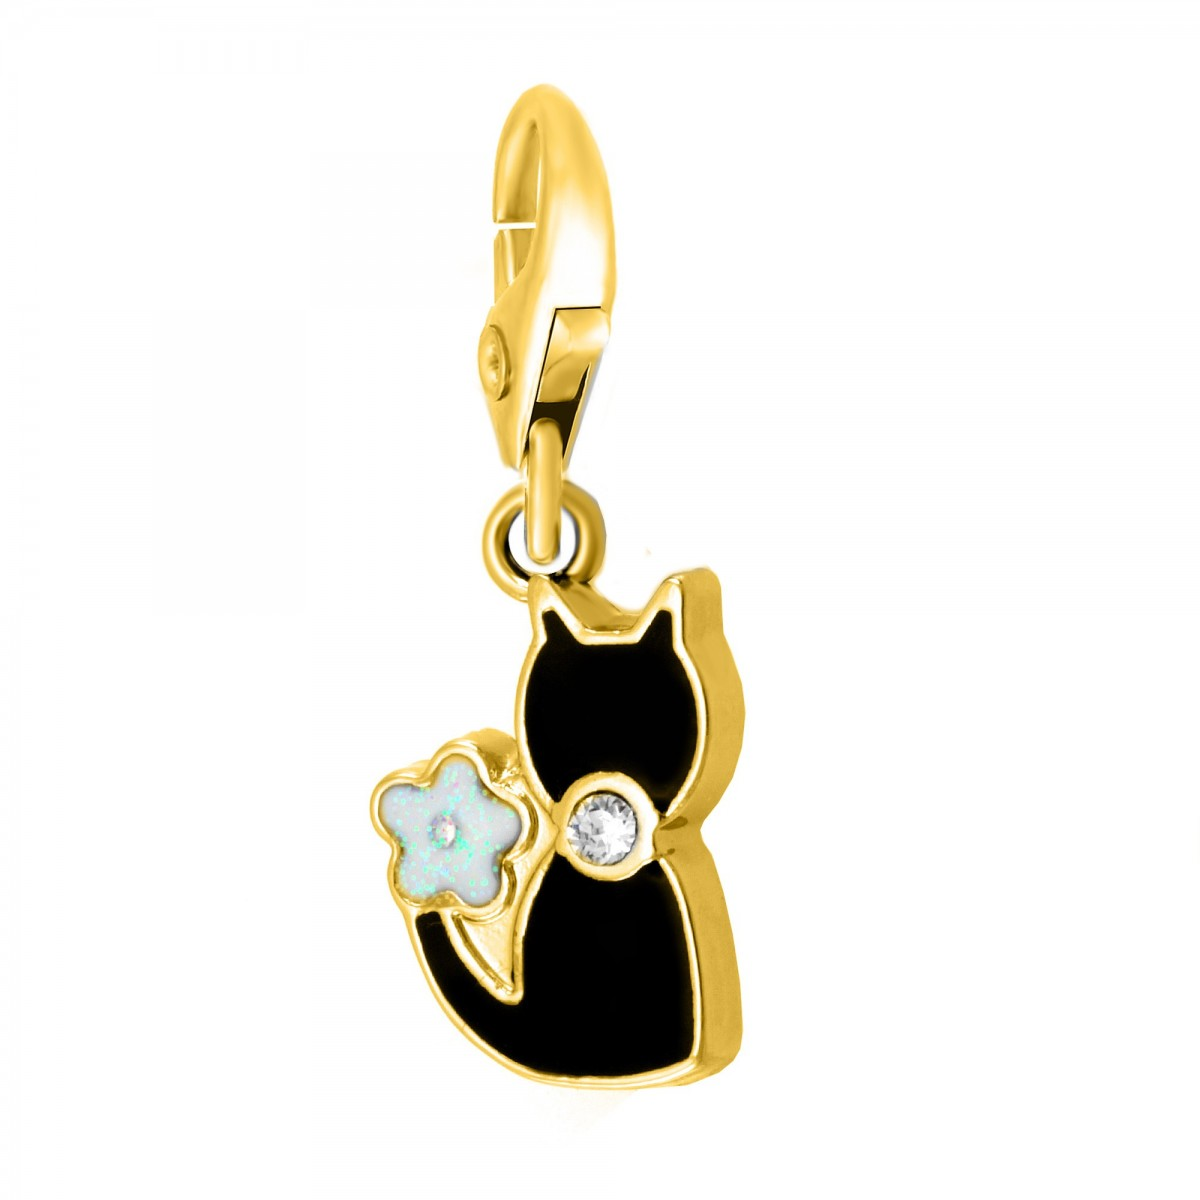 Charm chat noir So Charm made with crystal from Swarovski